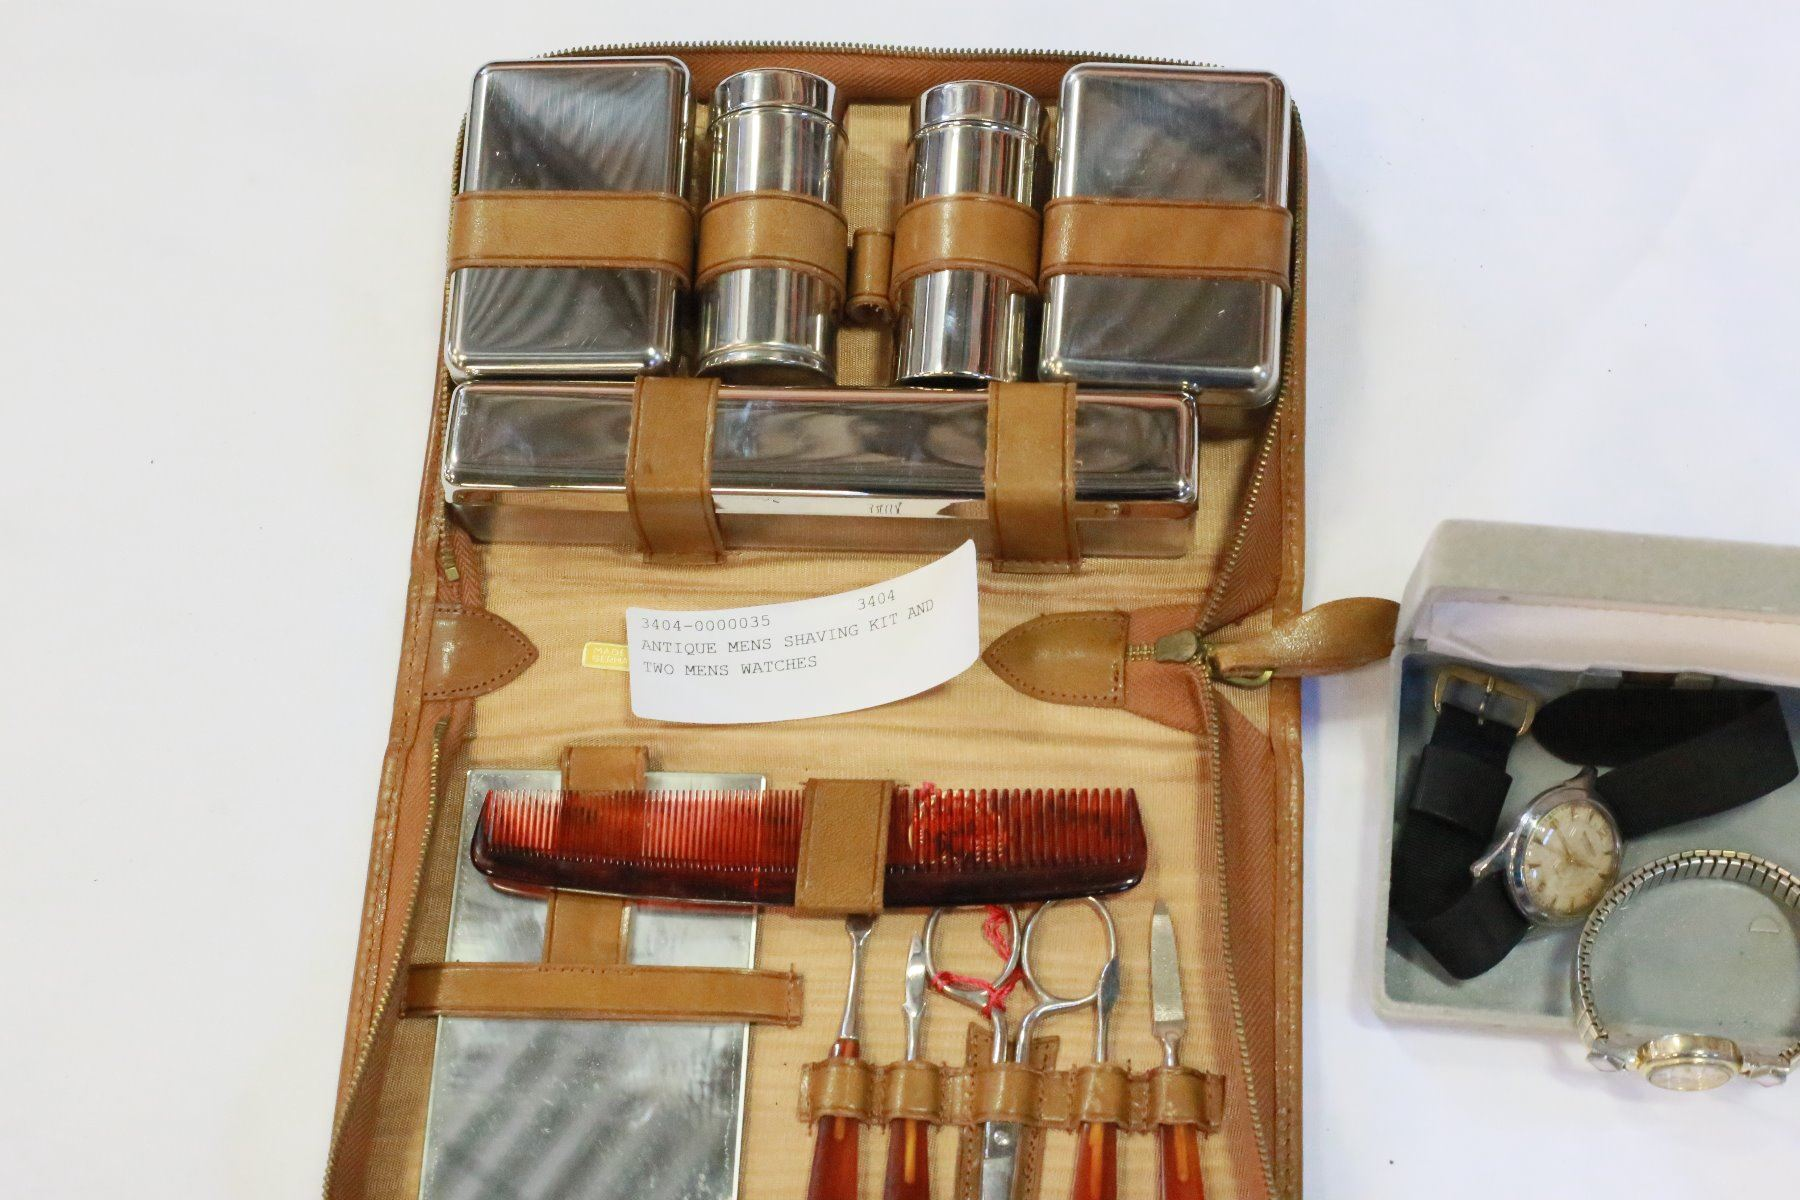 ANTIQUE MENS SHAVING KIT AND TWO MENS WATCHES